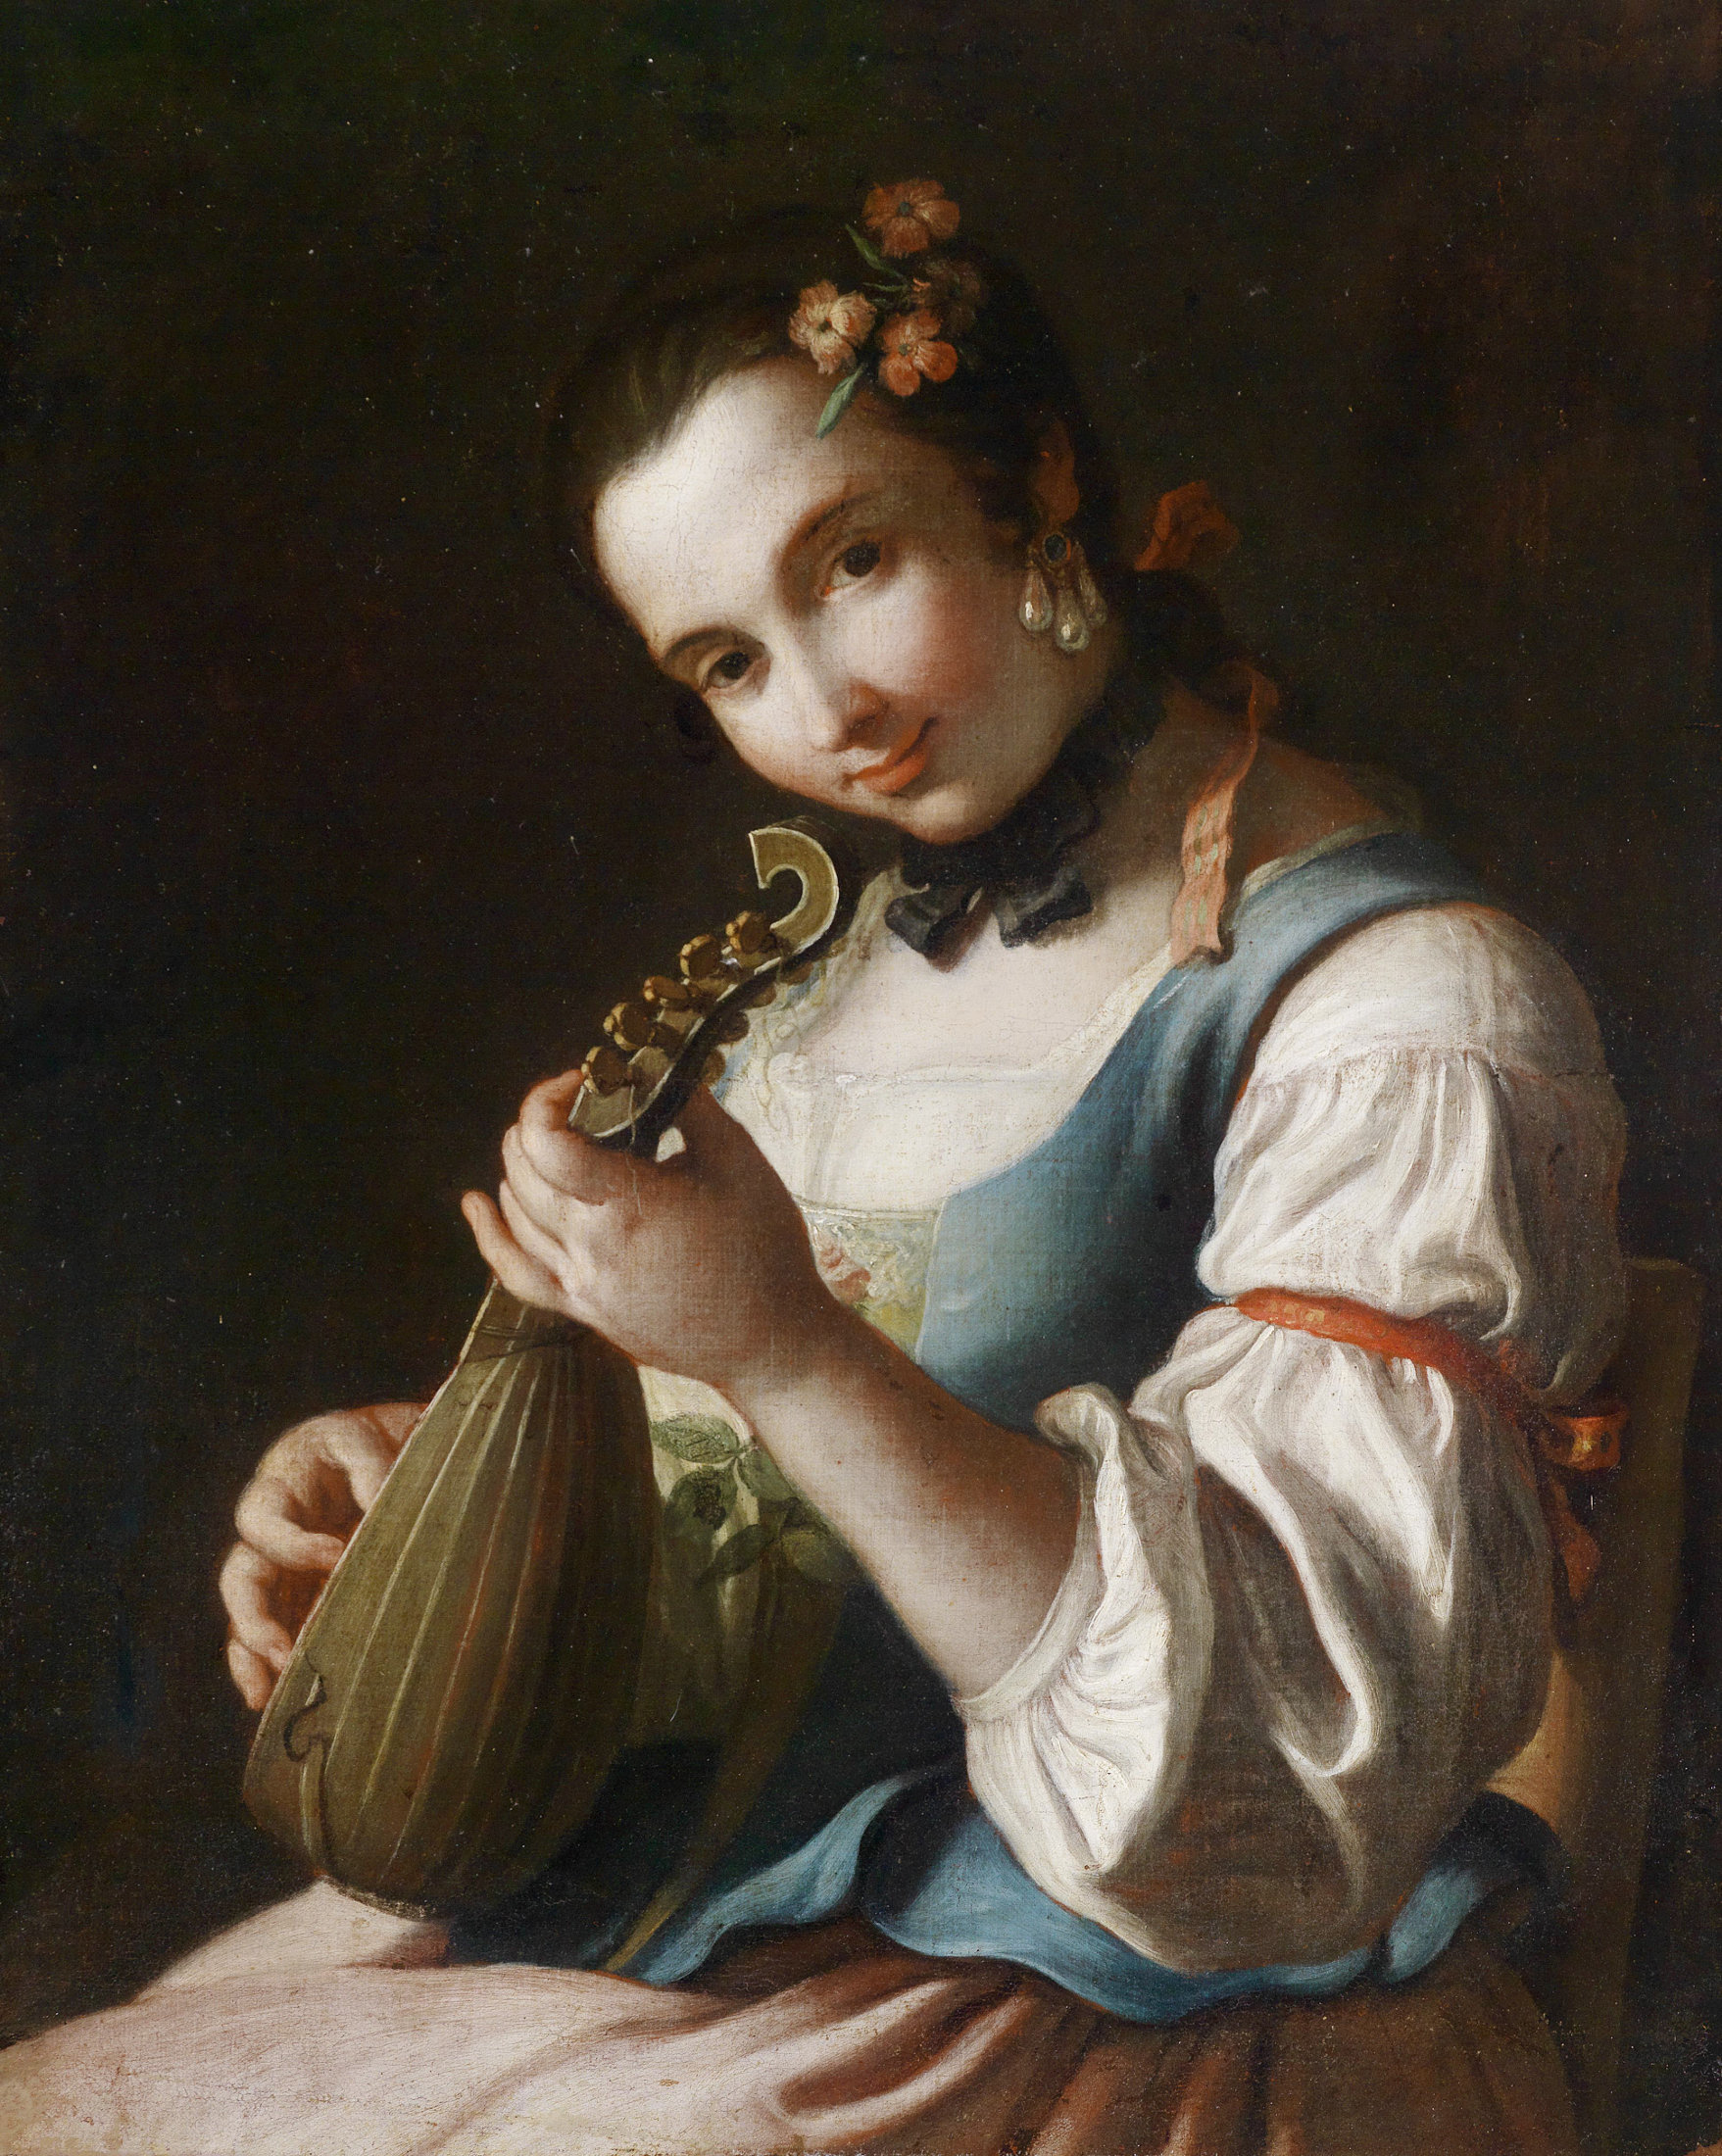 siftingthepast_girl-with-lute_pietro-rotari1707-1762_.jpg